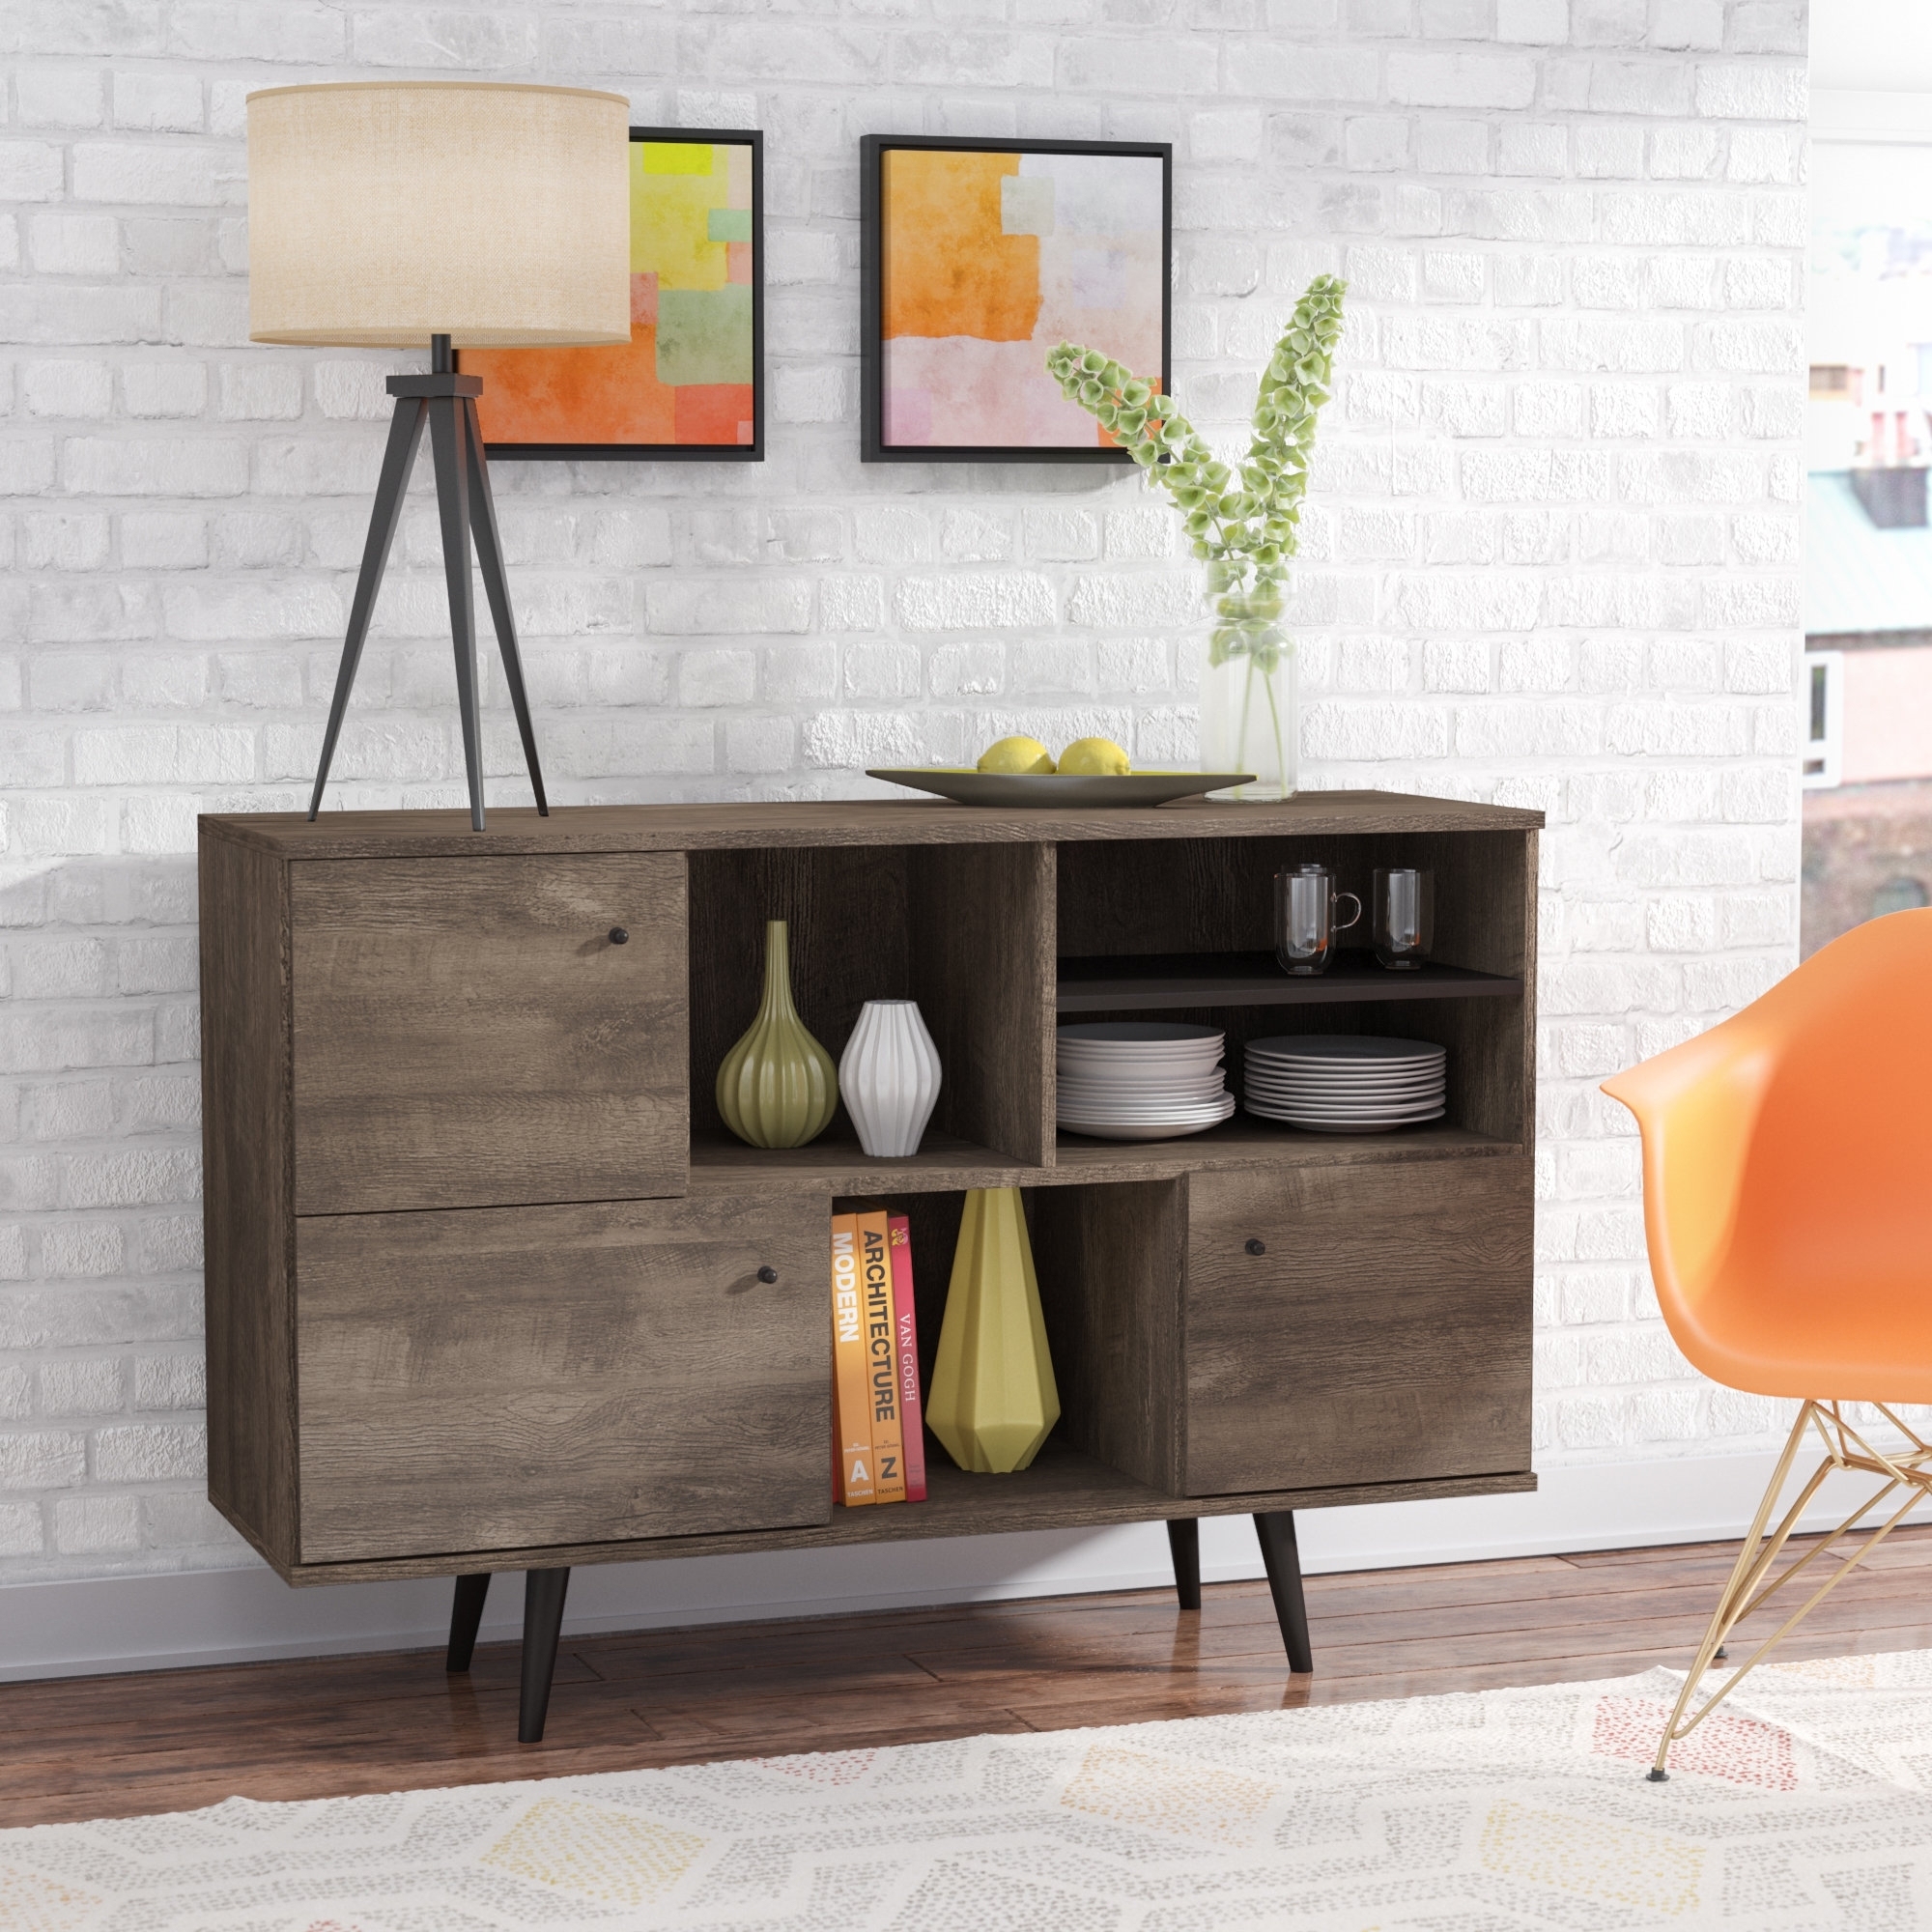 Extra Long Sideboard | Wayfair with regard to Walnut Finish Crown Moulding Sideboards (Image 18 of 30)